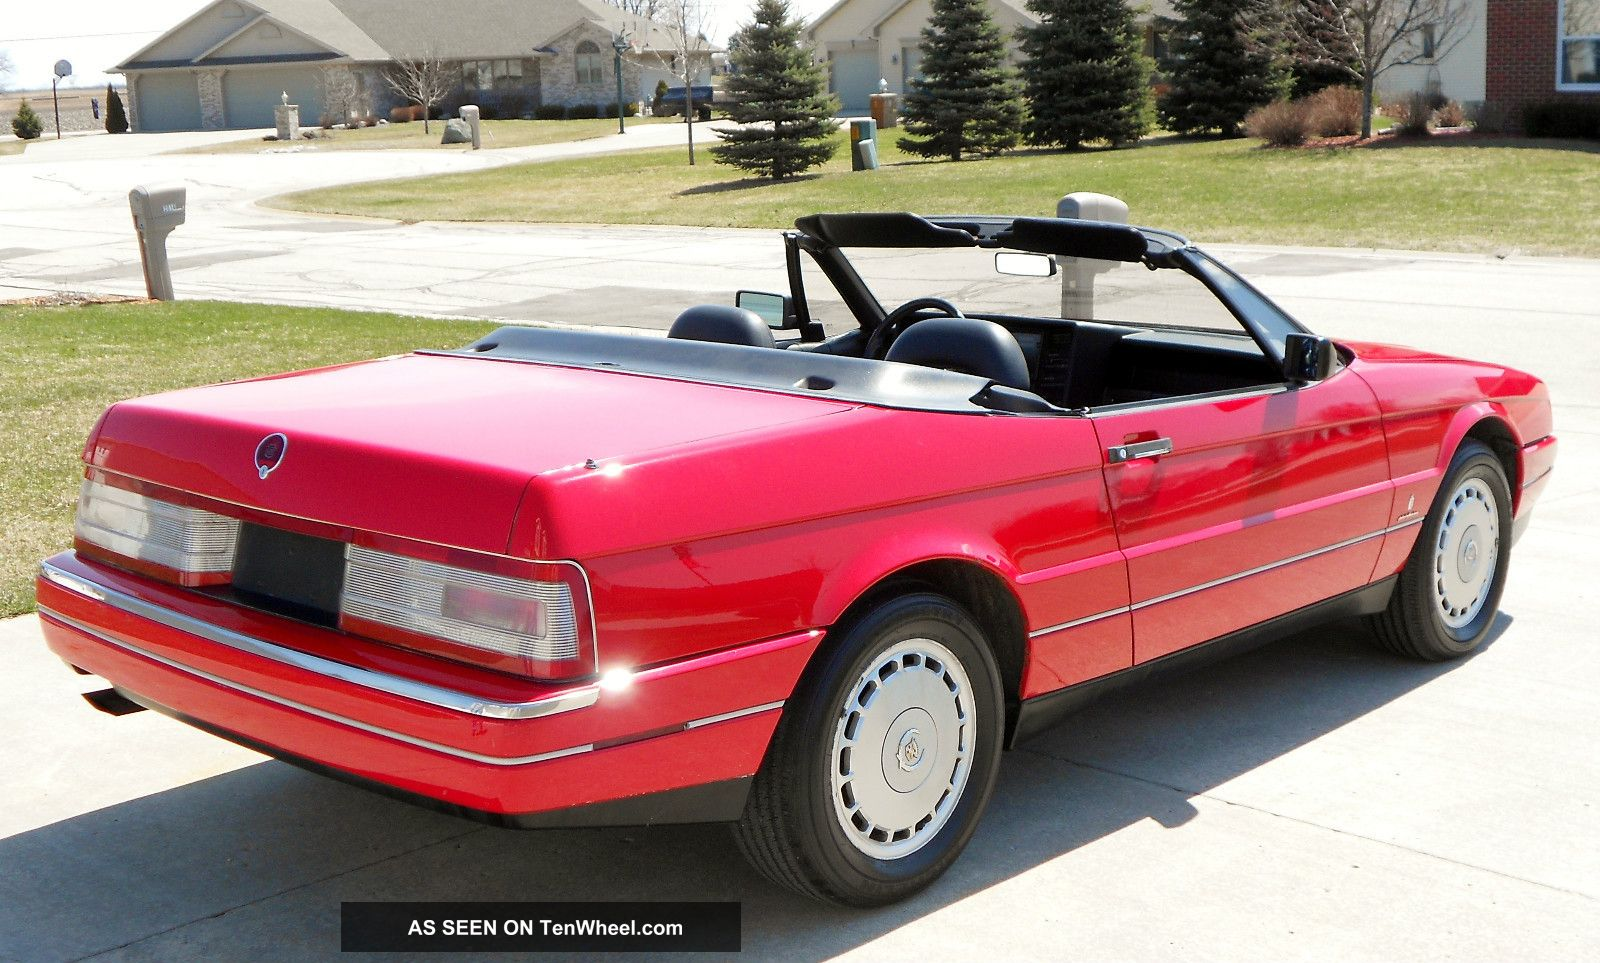 1992 Cadillac Allante Red Convertible Sharp Excellent Look 92 Ford Fiesta Engine Diagram